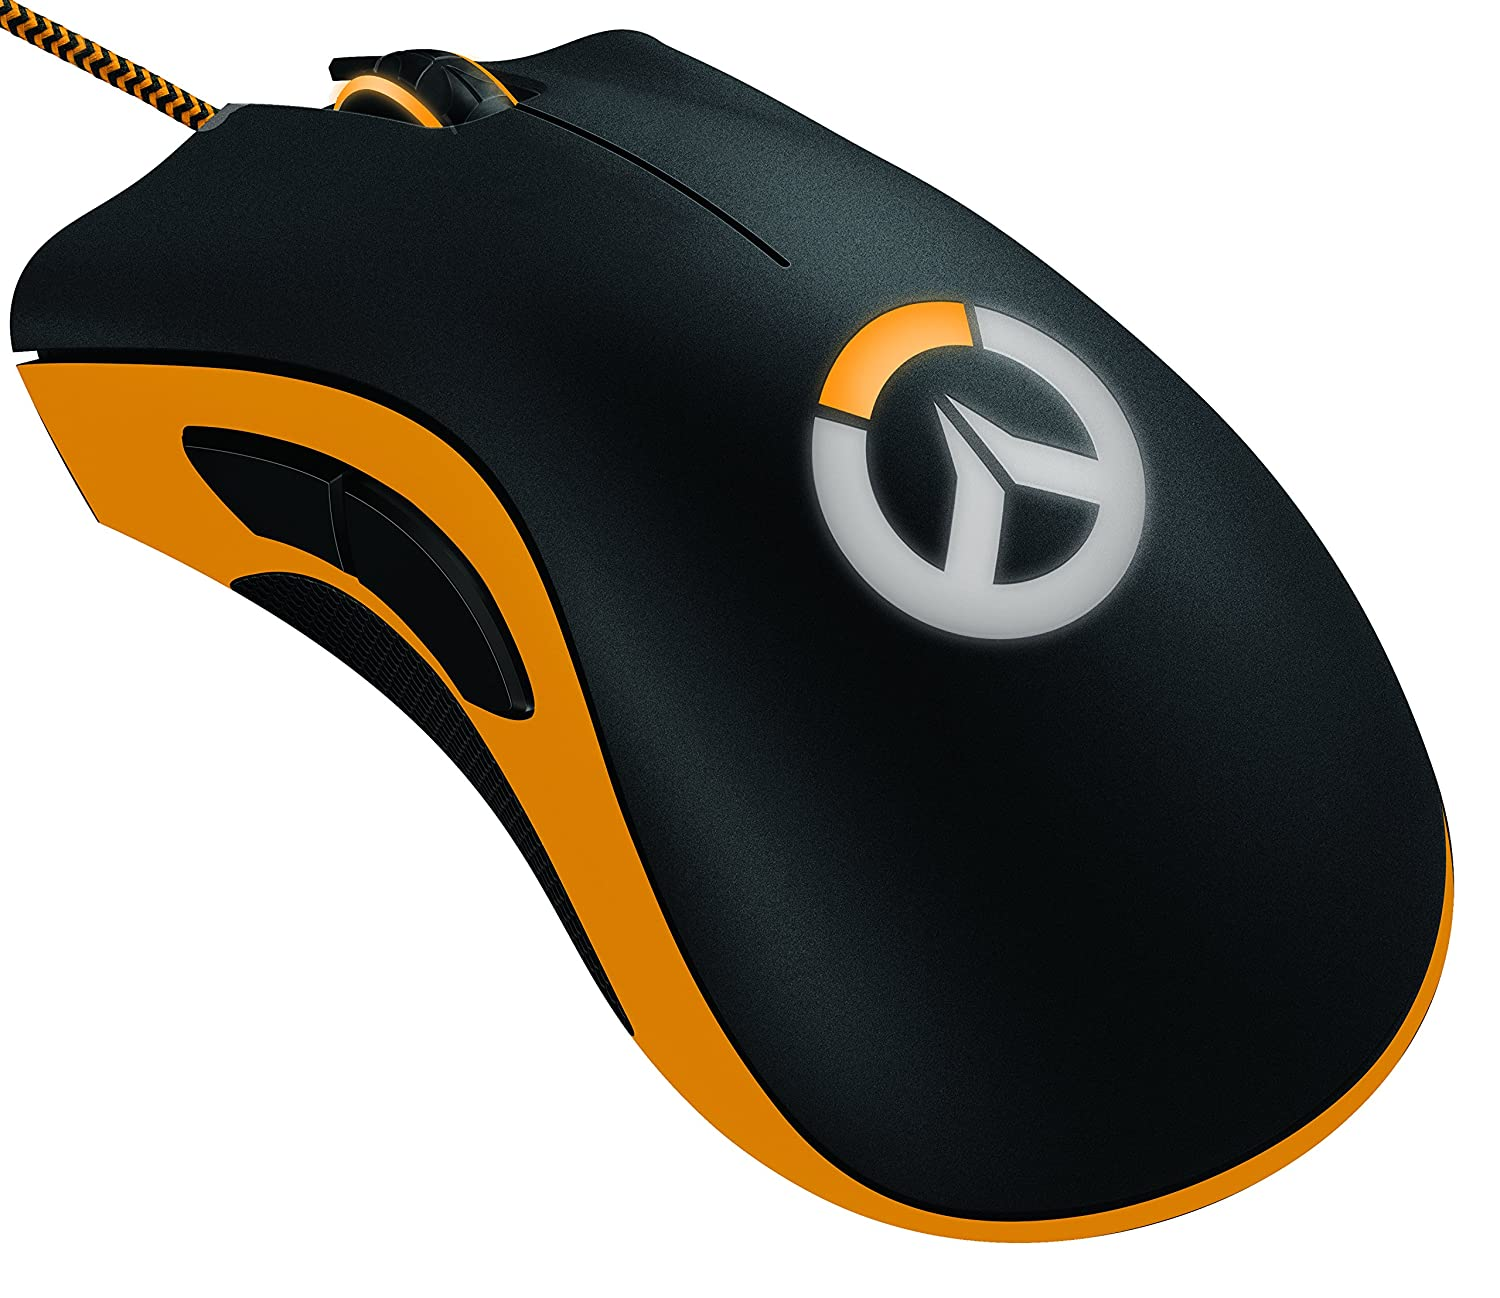 Razer Overwatch DeathAdder Chroma - Multi-Color Ergonomic Gaming Mouse